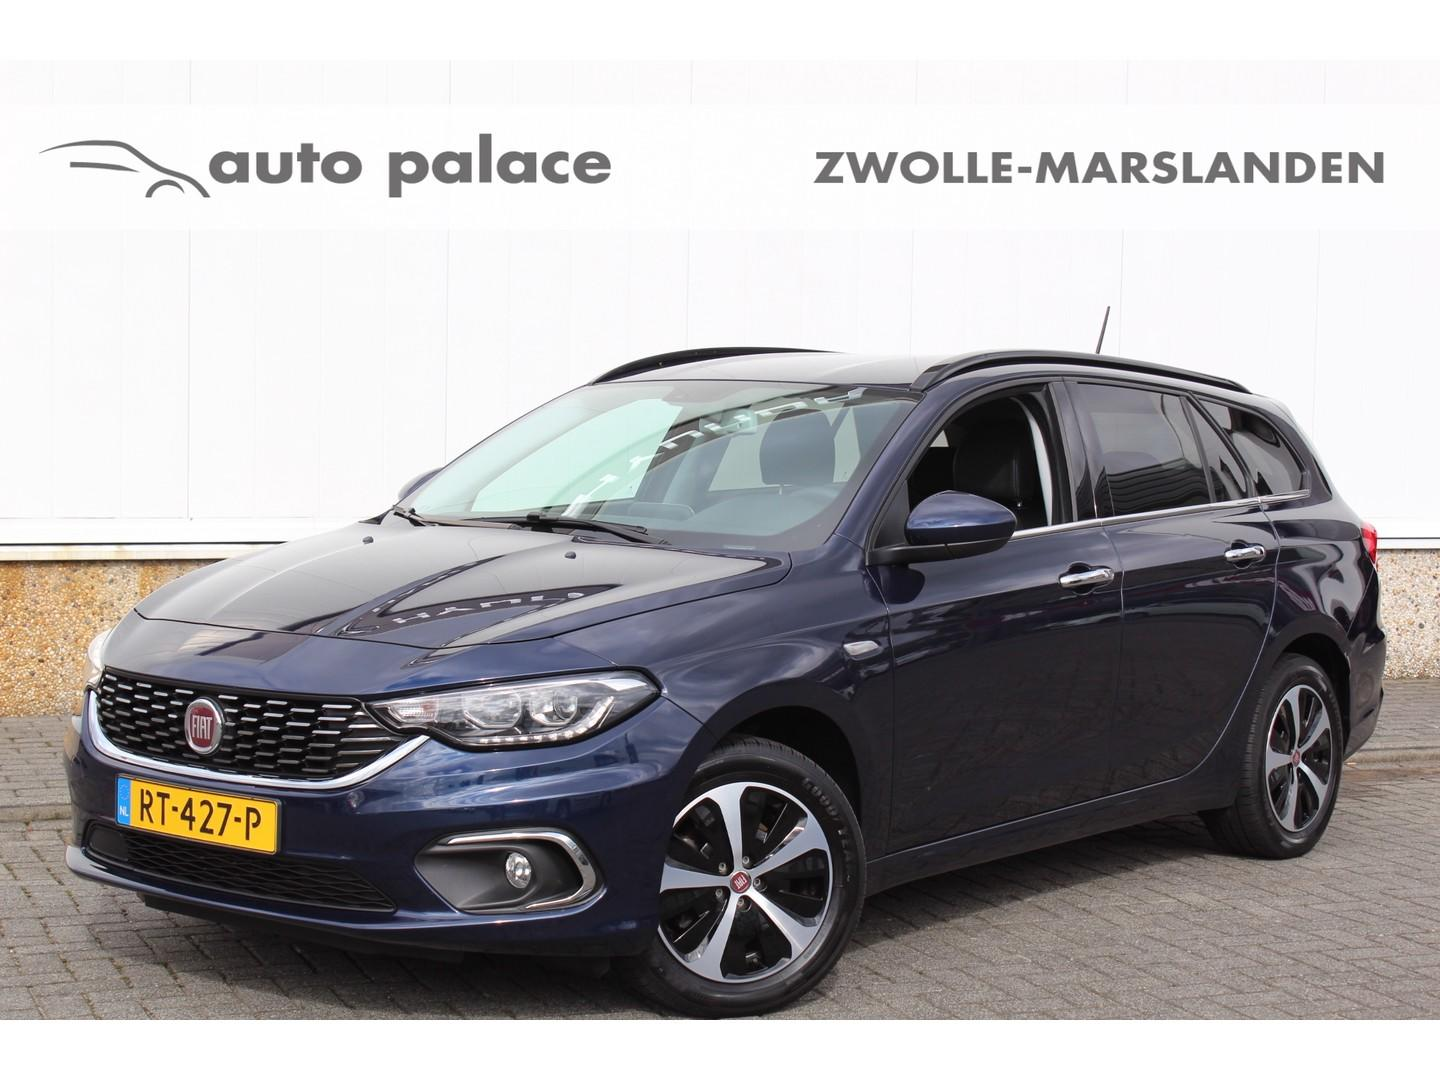 Fiat Tipo Stationwagon 1.6 multijet 16v 120pk dct business lusso